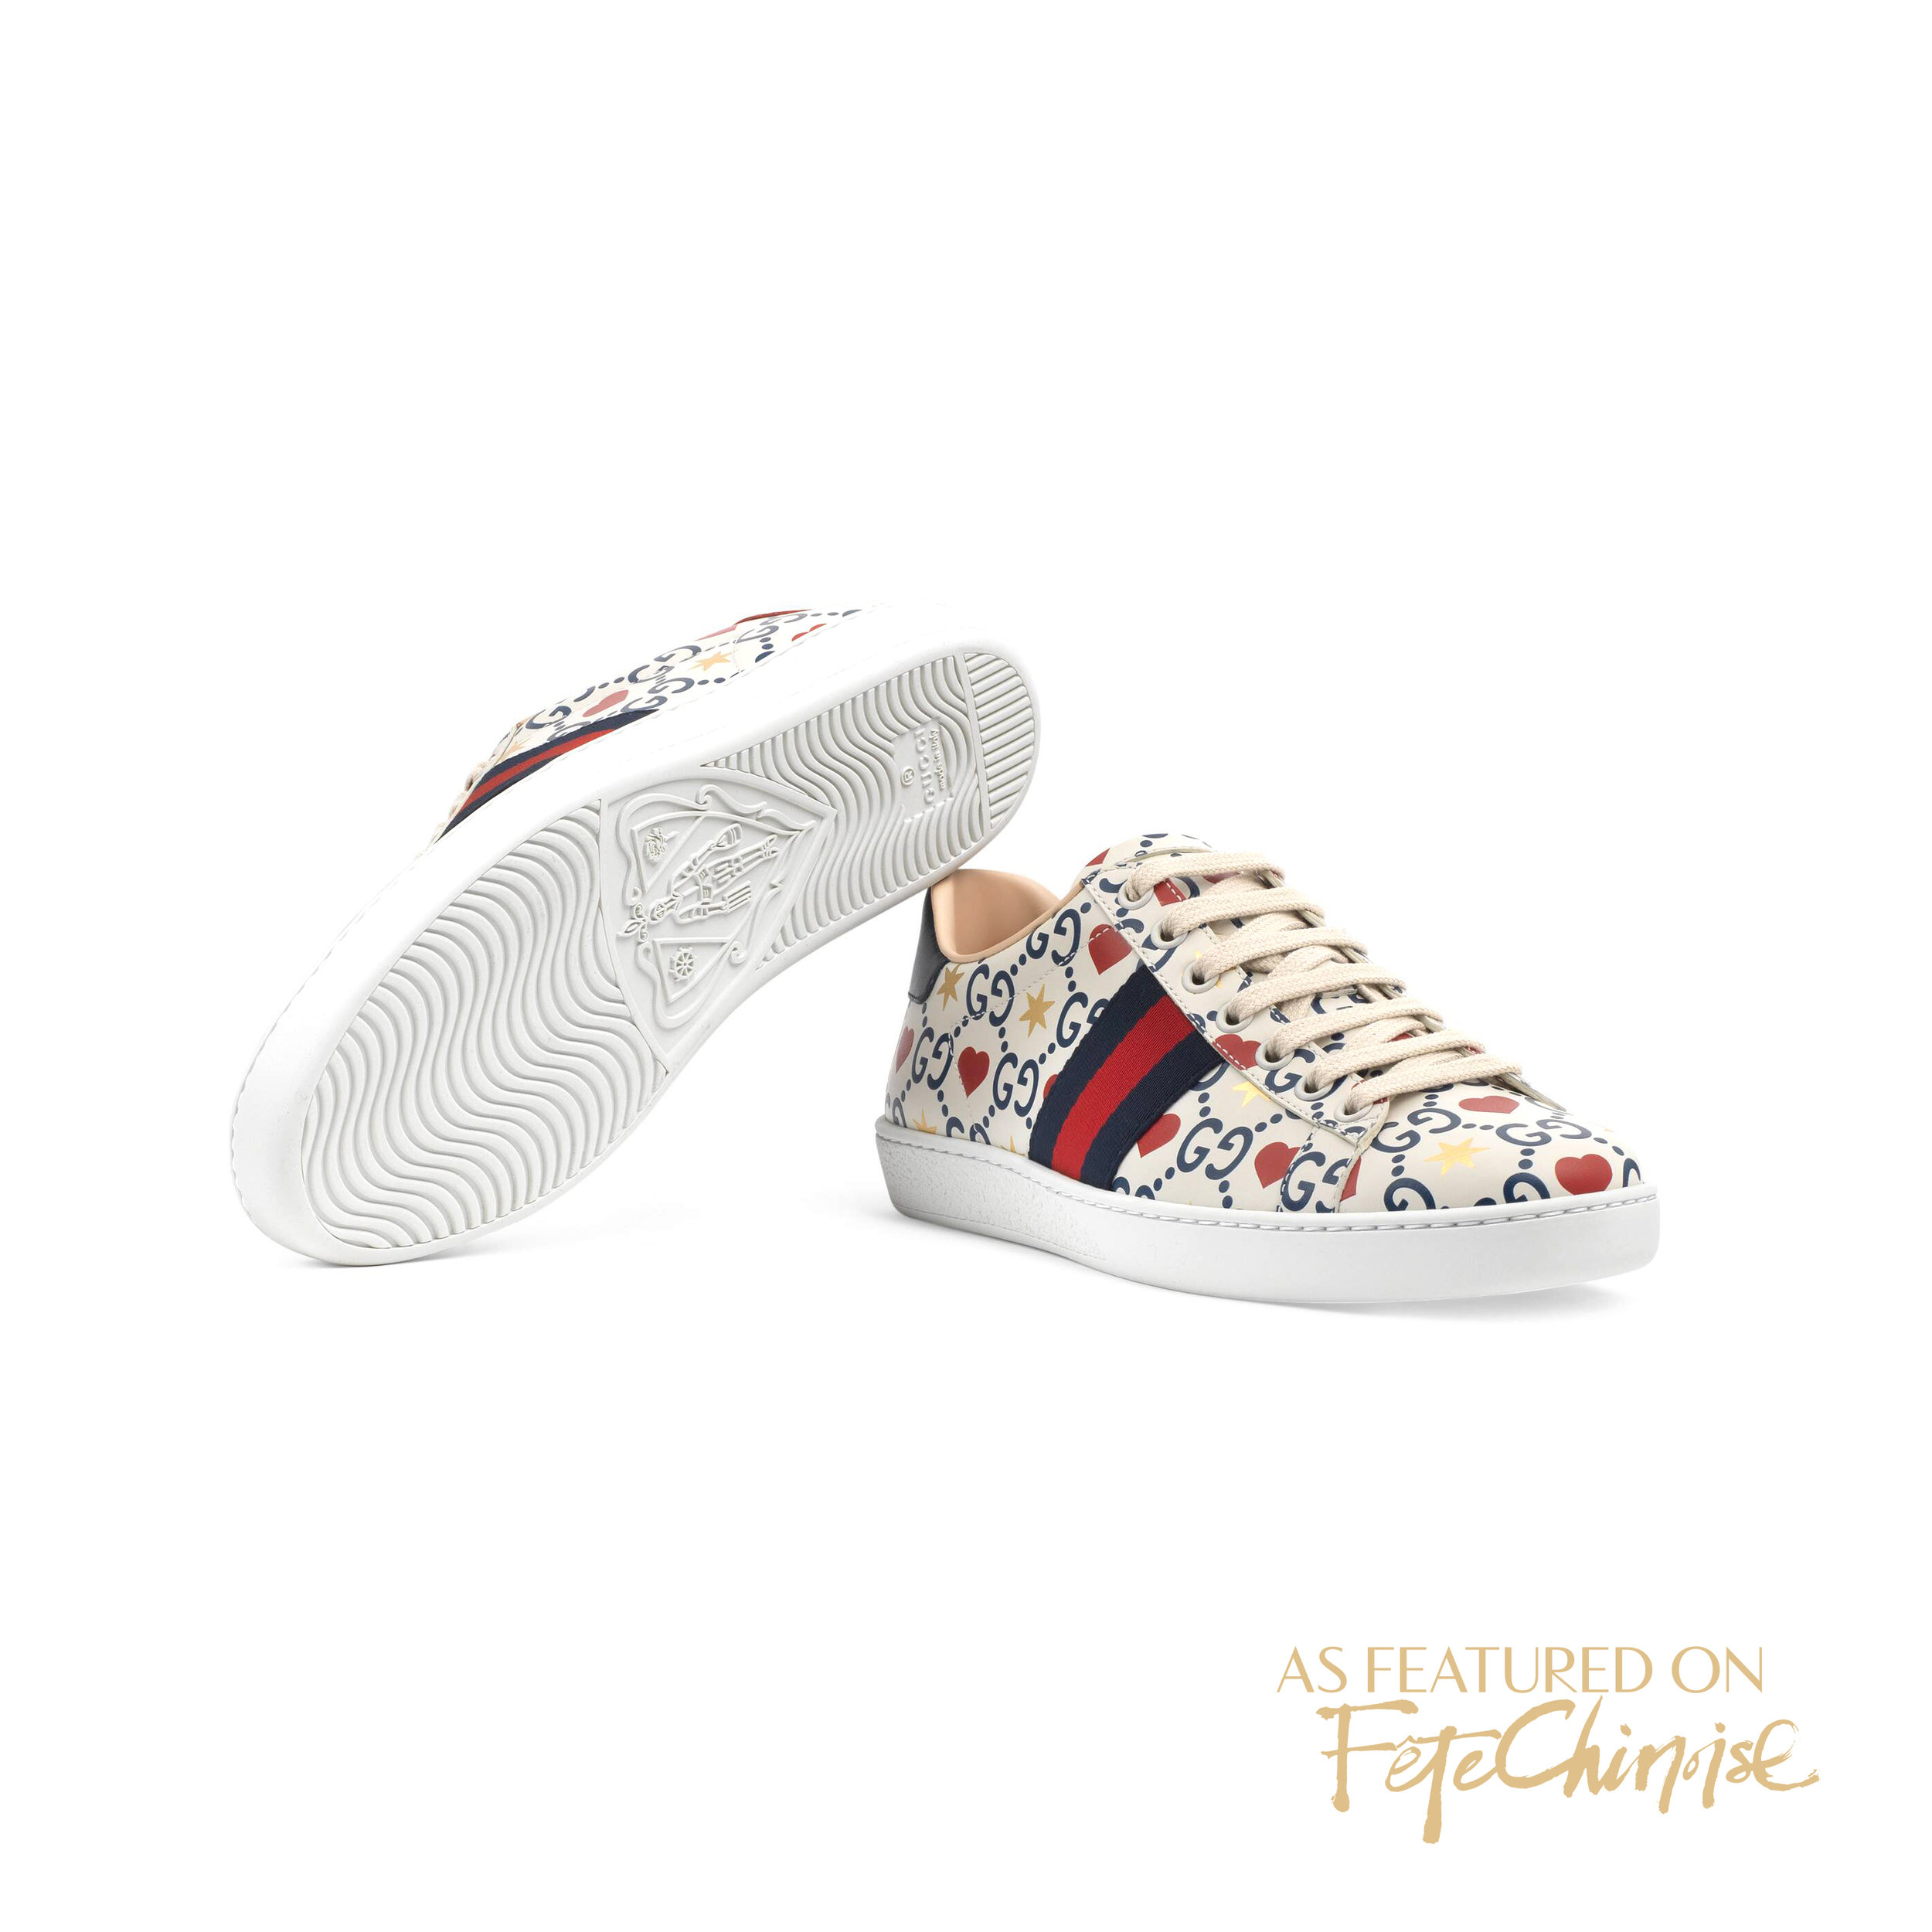 Photo credit: Gucci - Chinese Valentine's Day Exclusive Ace Sneaker.